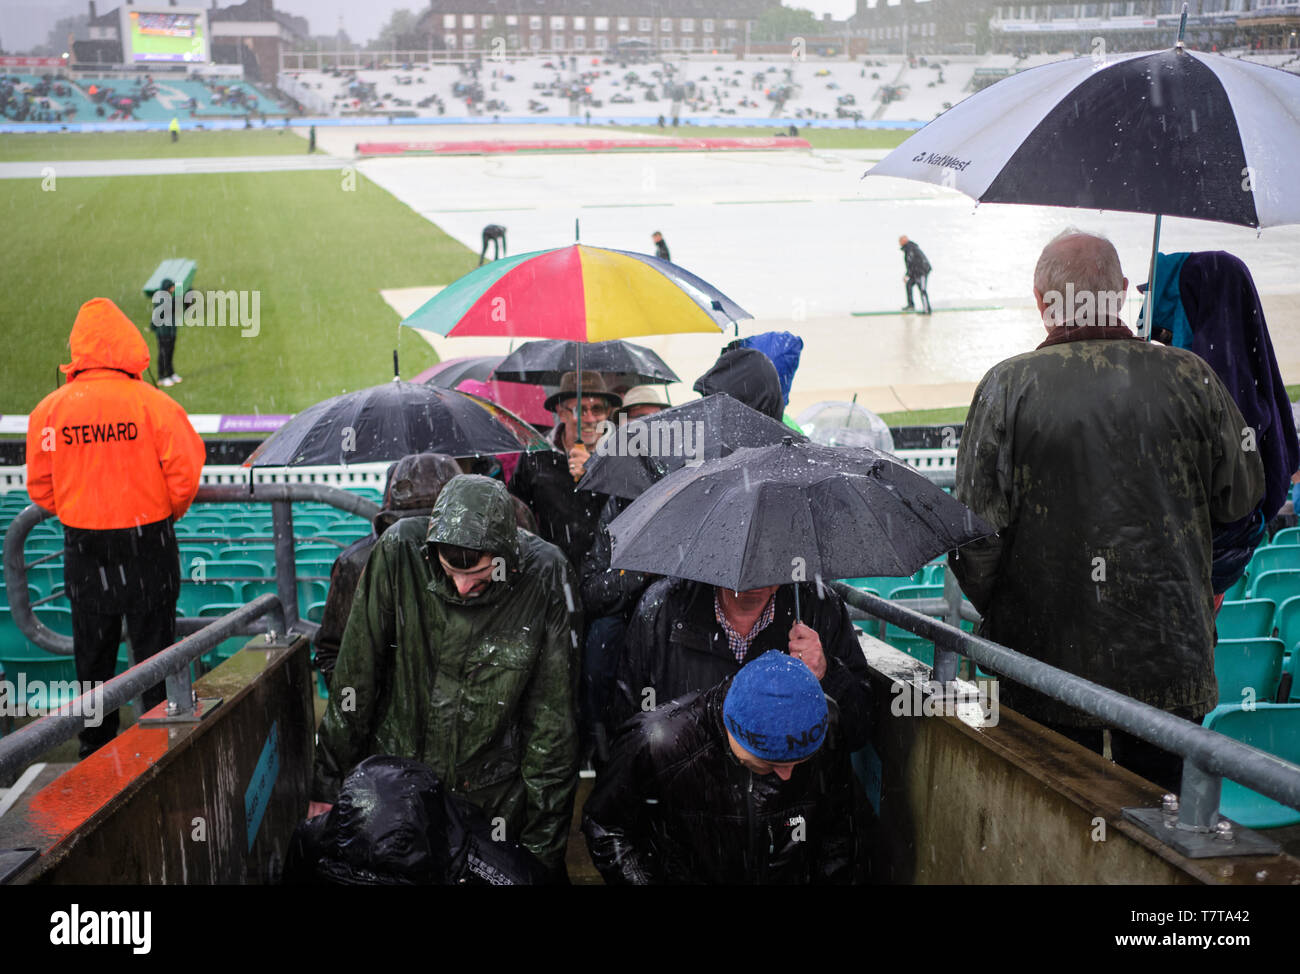 London, UK. 8th May 2019. UK Weather:  Ticket holders leave as heavy rain and hail  stops play during the first One Day International between England and Pakistan at The Kia Oval. Credit: Thomas Bowles/Alamy Live News Stock Photo